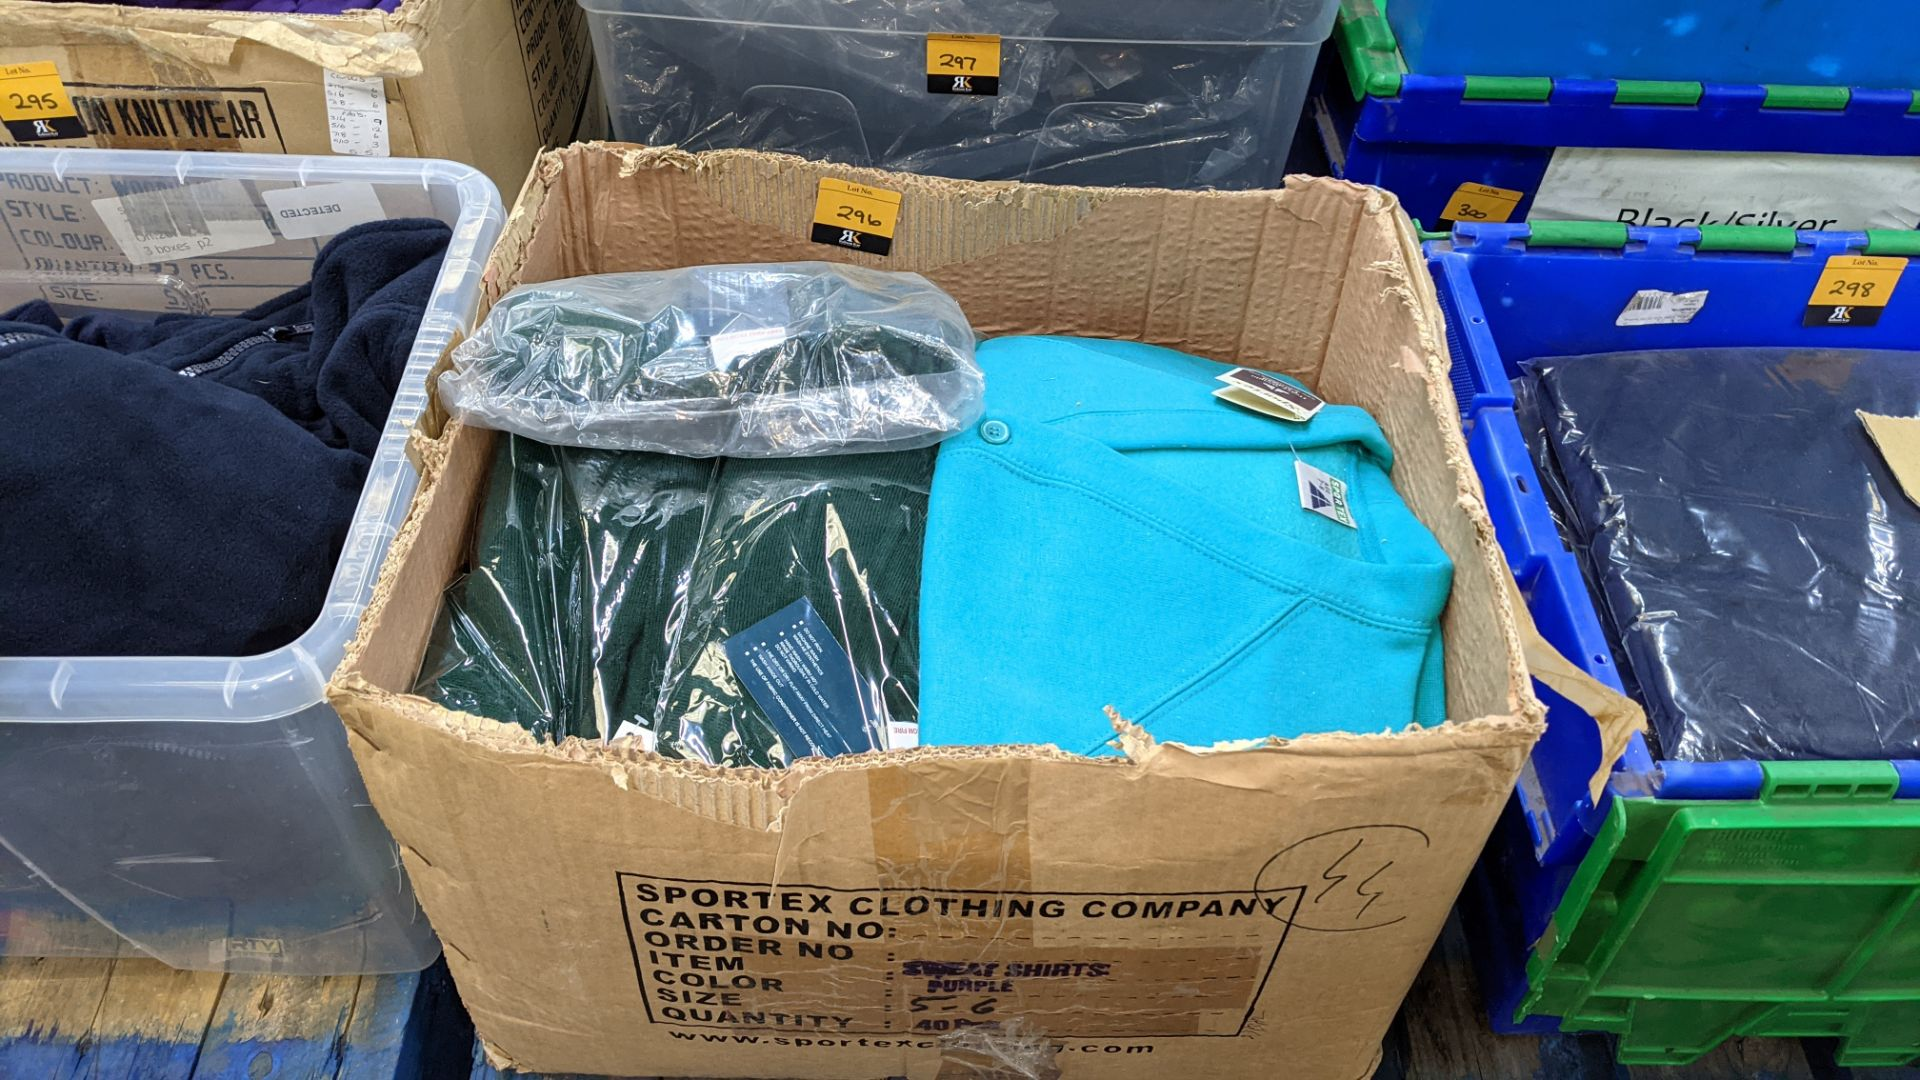 Approx 18 off Rowlinson children's green button up sweat tops - 1 large box